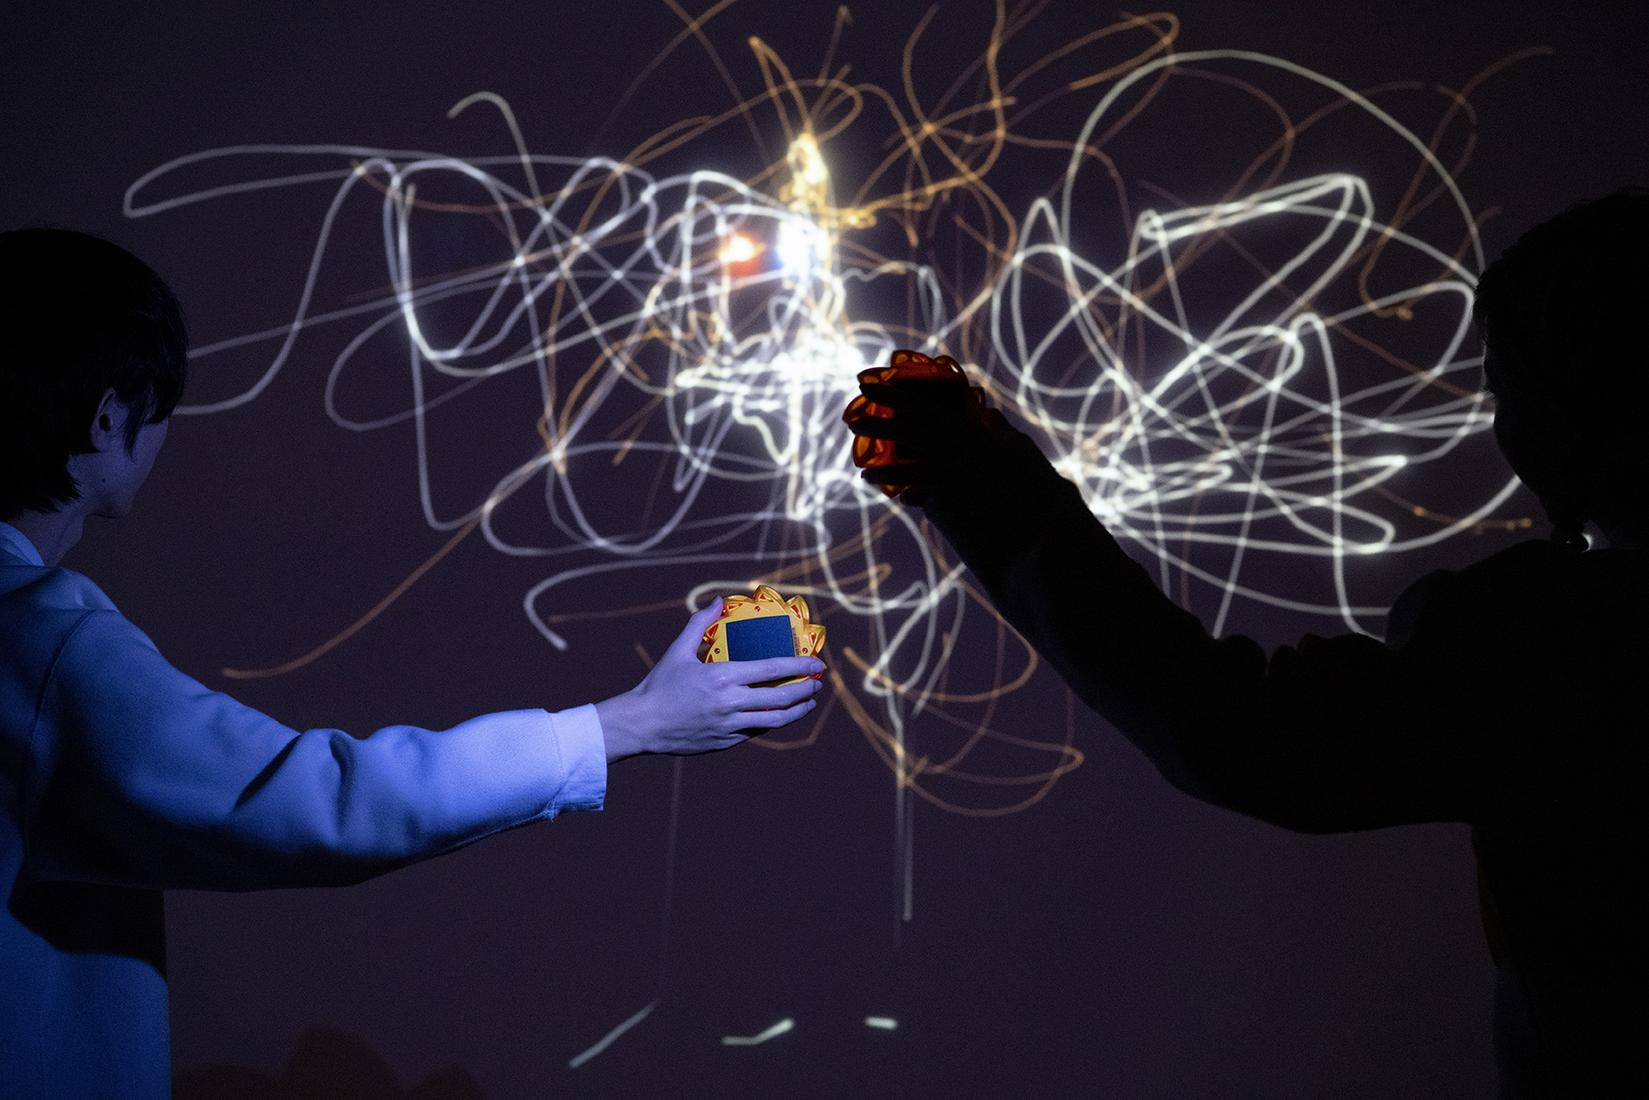 This is an installation image of Olafur Eliasson's...